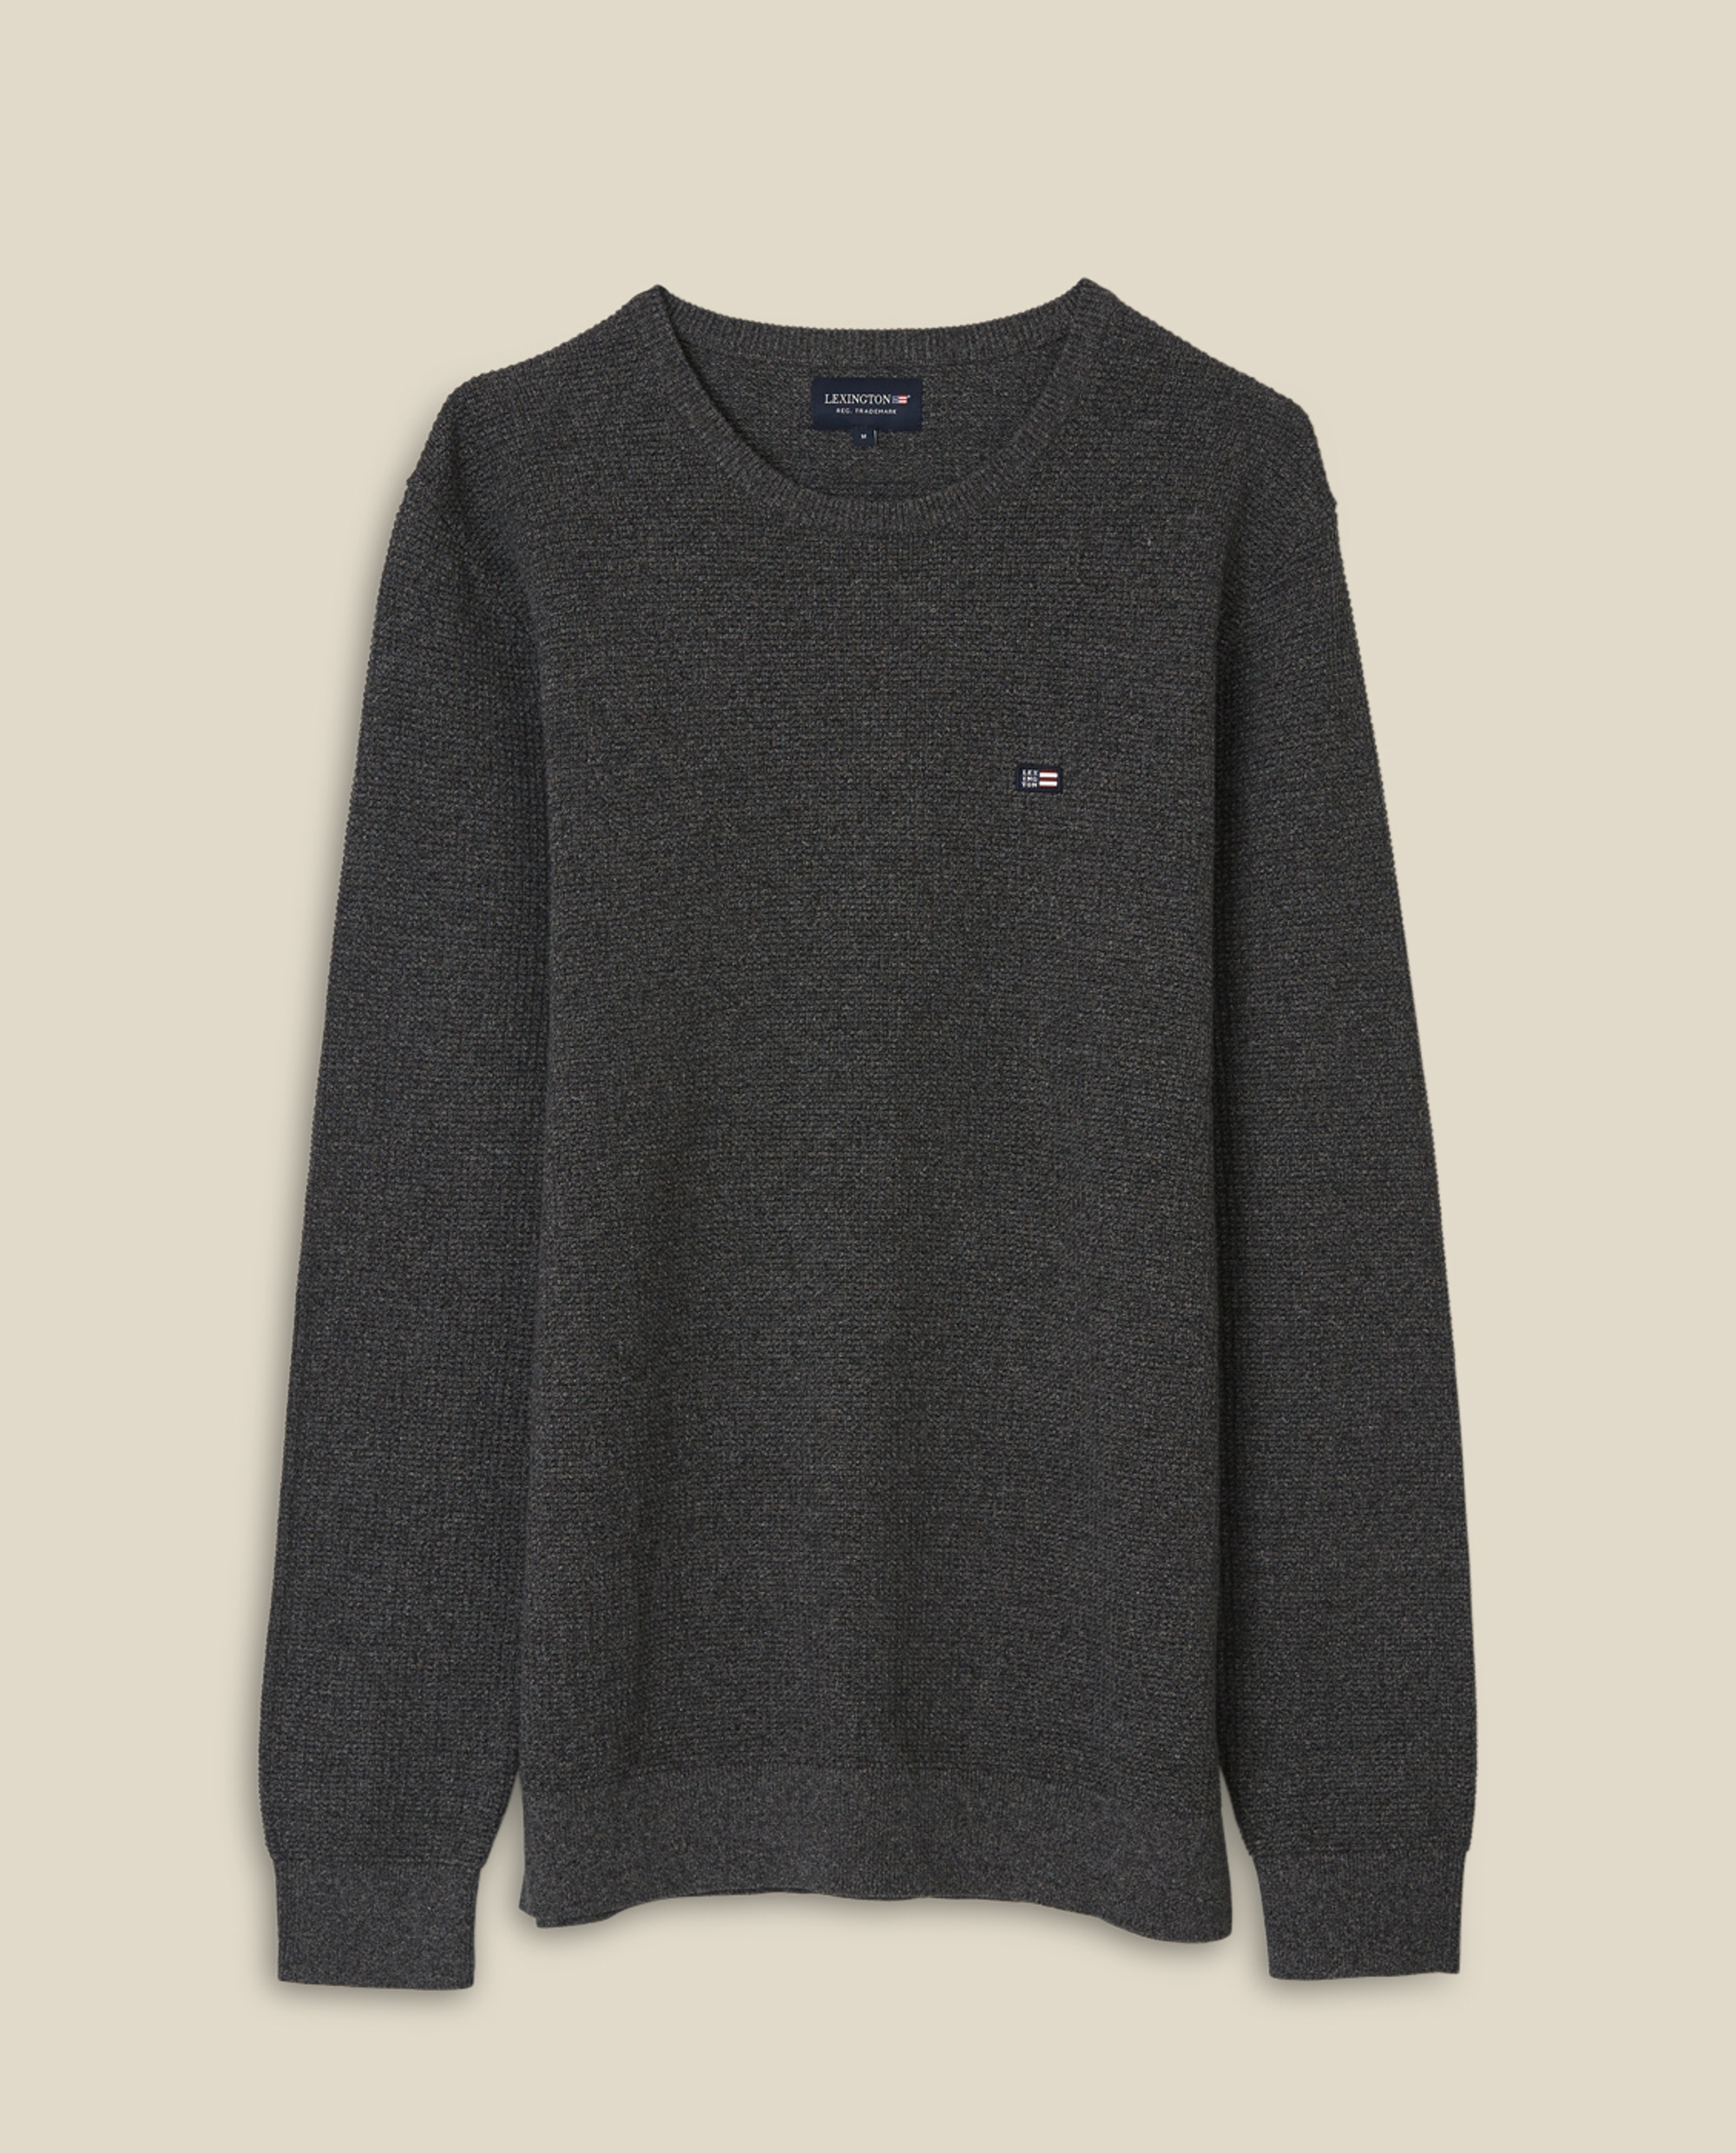 Graham Organic Cotton Crew Neck Sweater, Dark Gray Melange